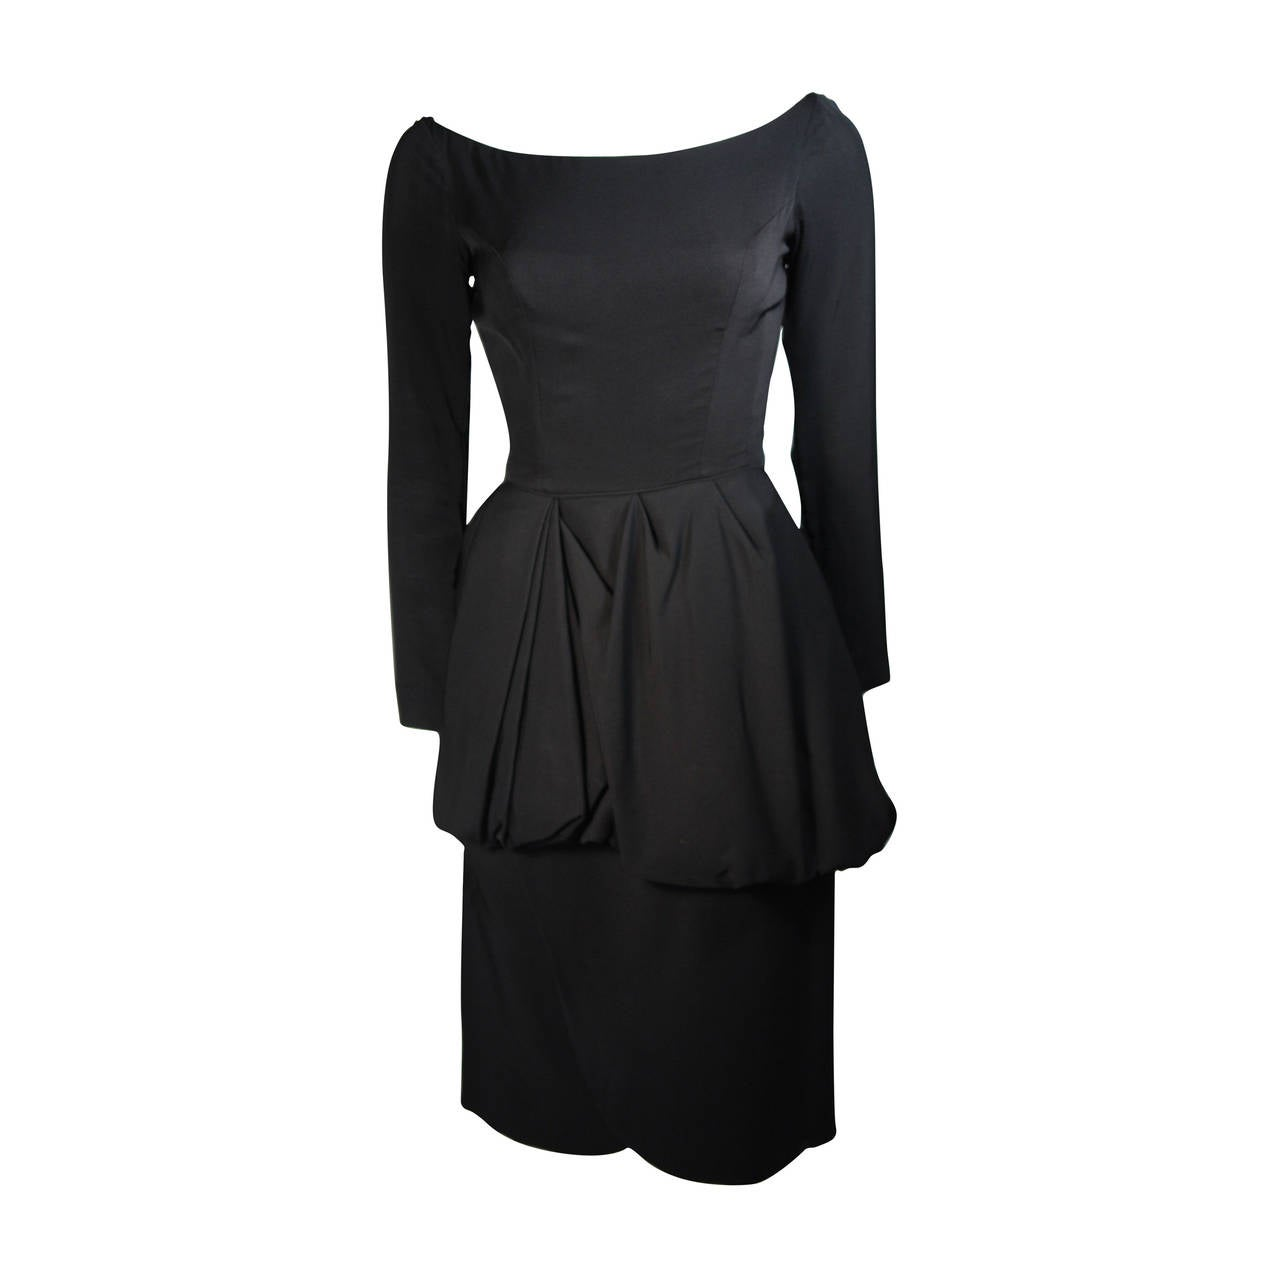 Ceil Chapman 1950's Black Cocktail Dress with Draped Peplum Detail Size Small